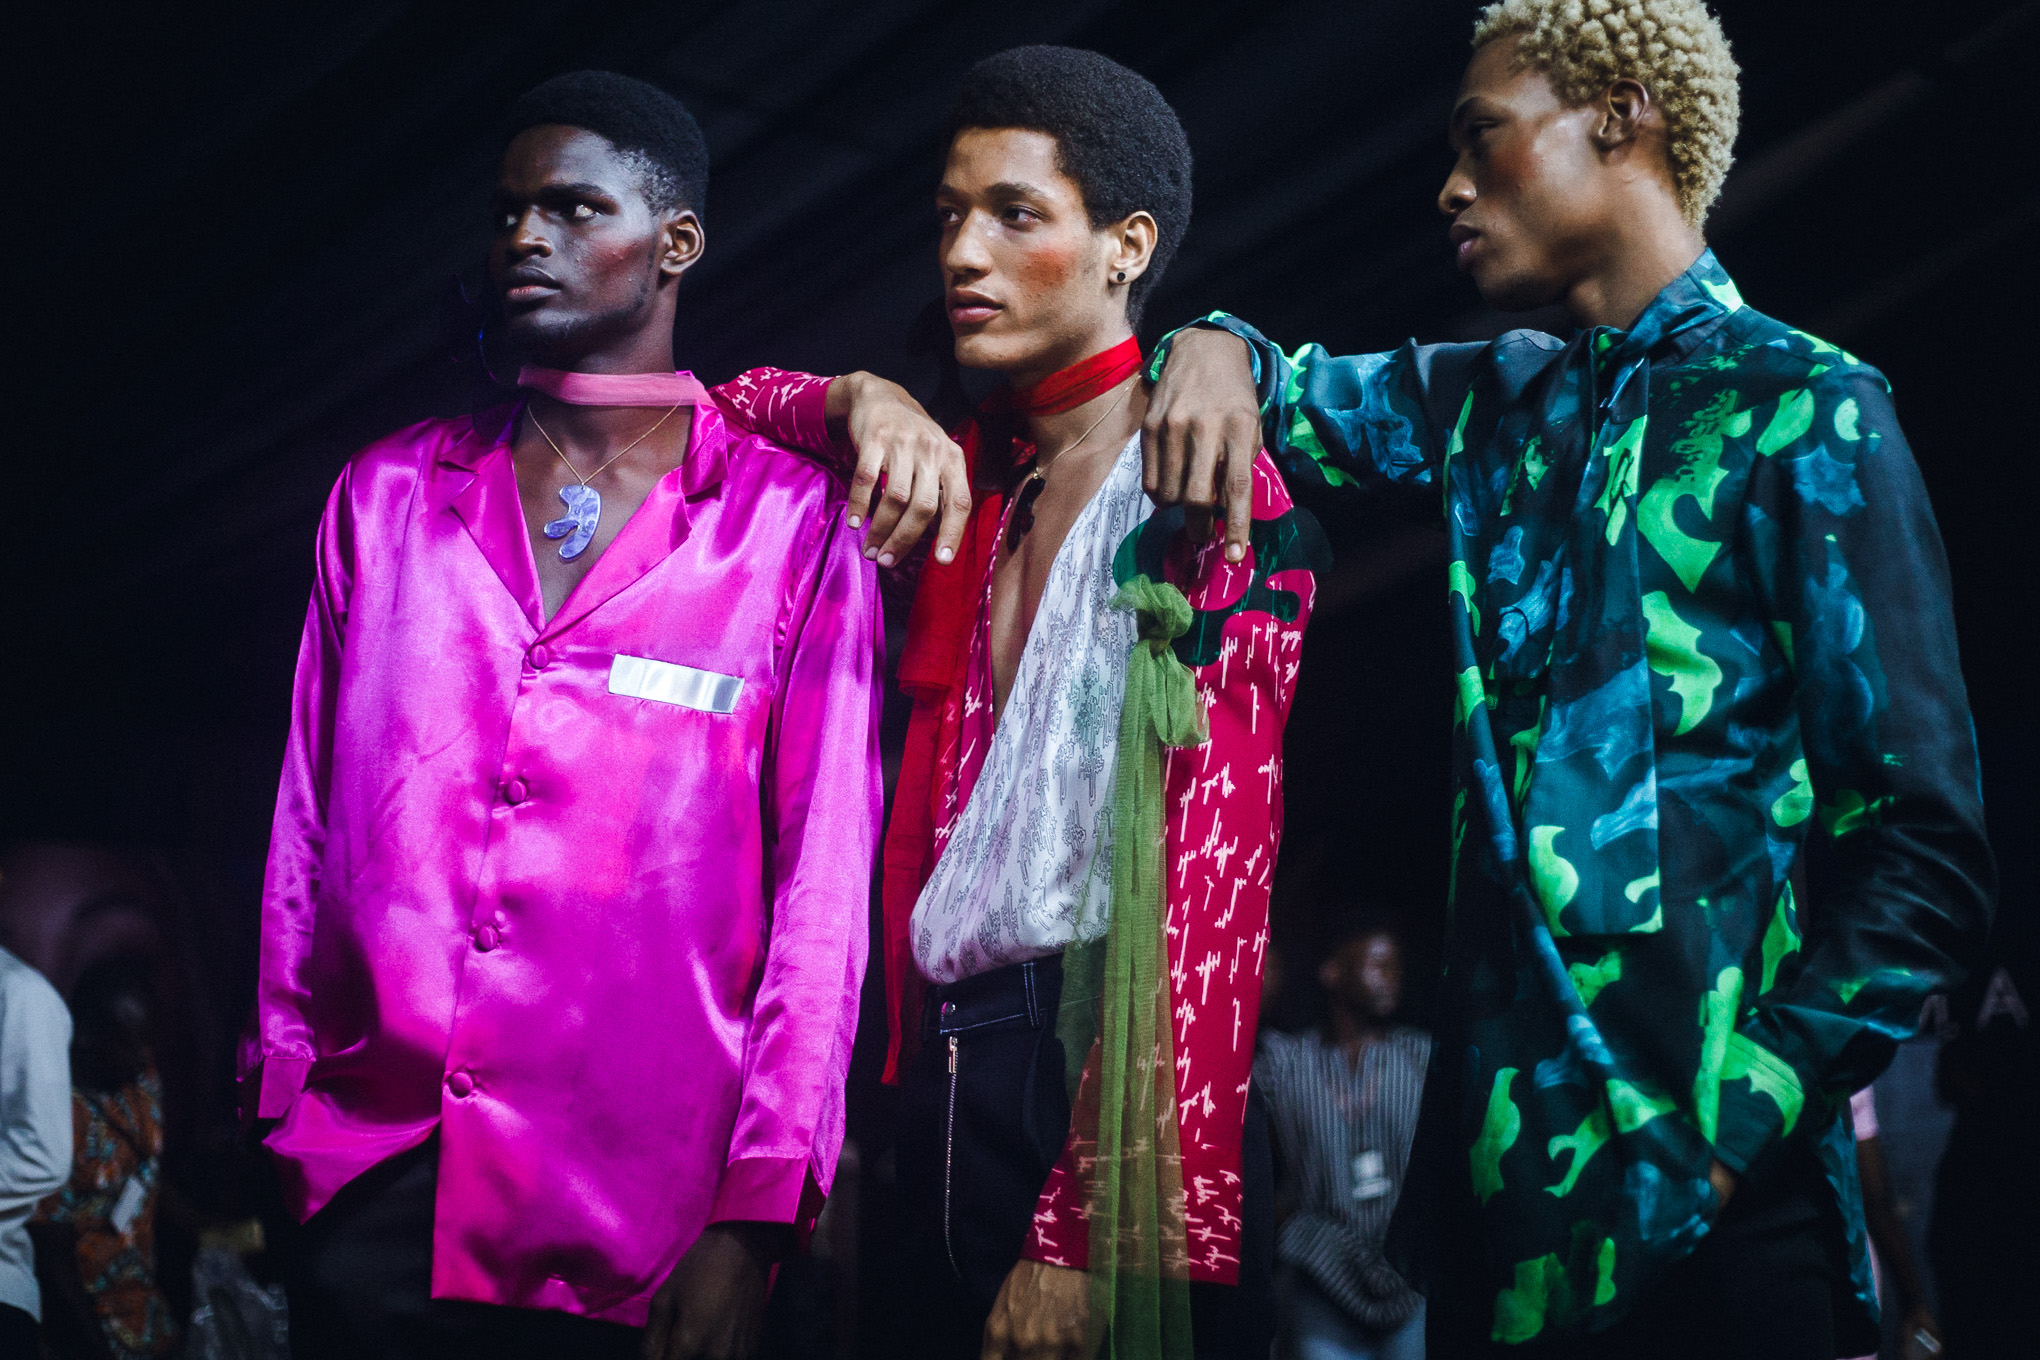 Nigerian Clothes Designs   From Harare To Lagos Africa S Gender Fluid Designs Are Defying